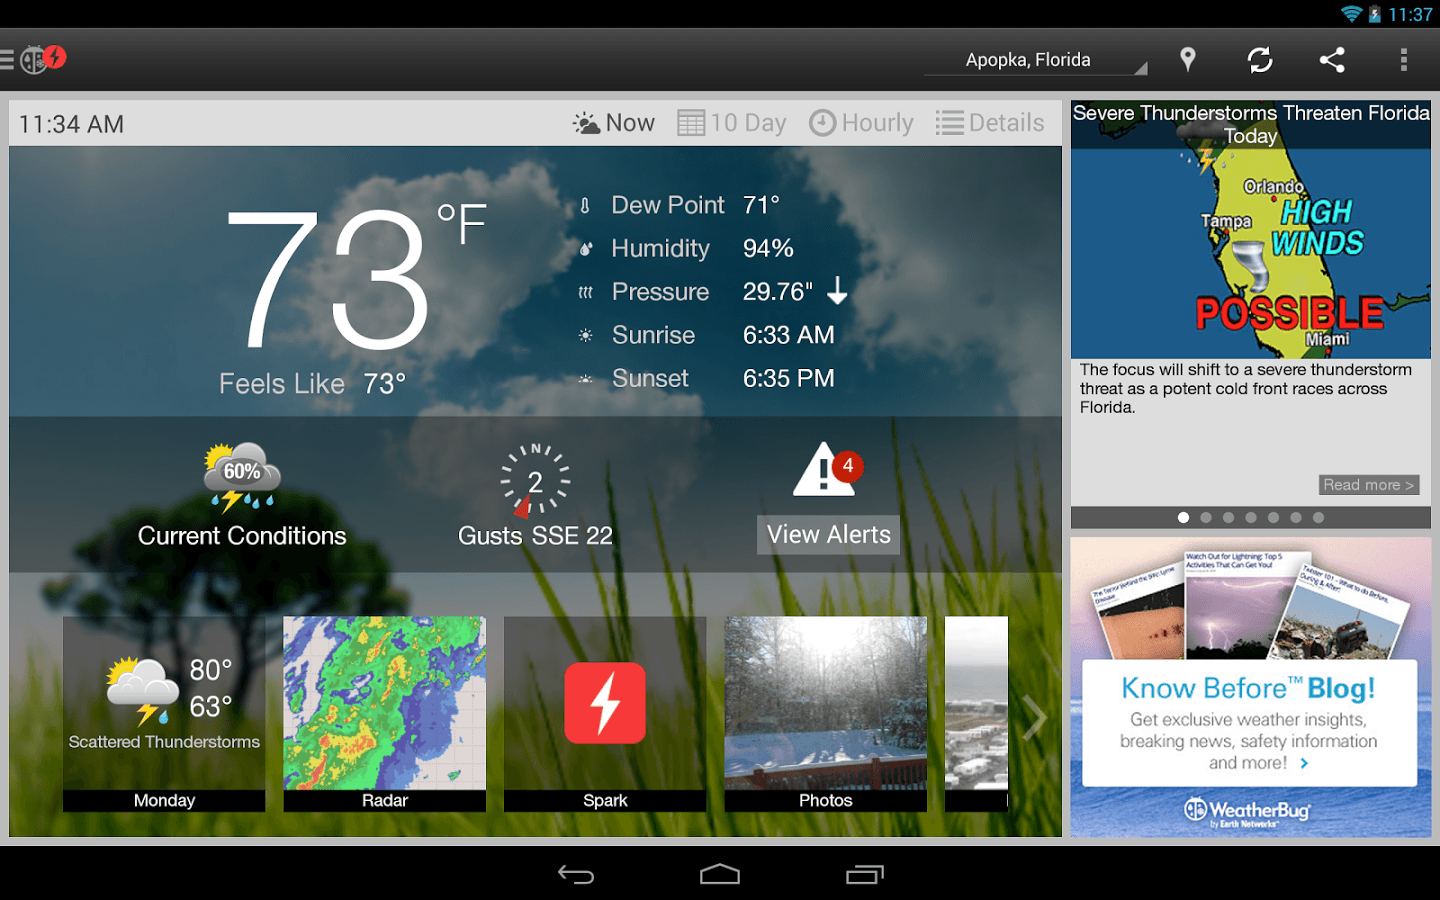 Phone Best Weather App For Android Phones best weather app for android like accuweather this one is tablets it the though sadly no its not phone interface clumsy and